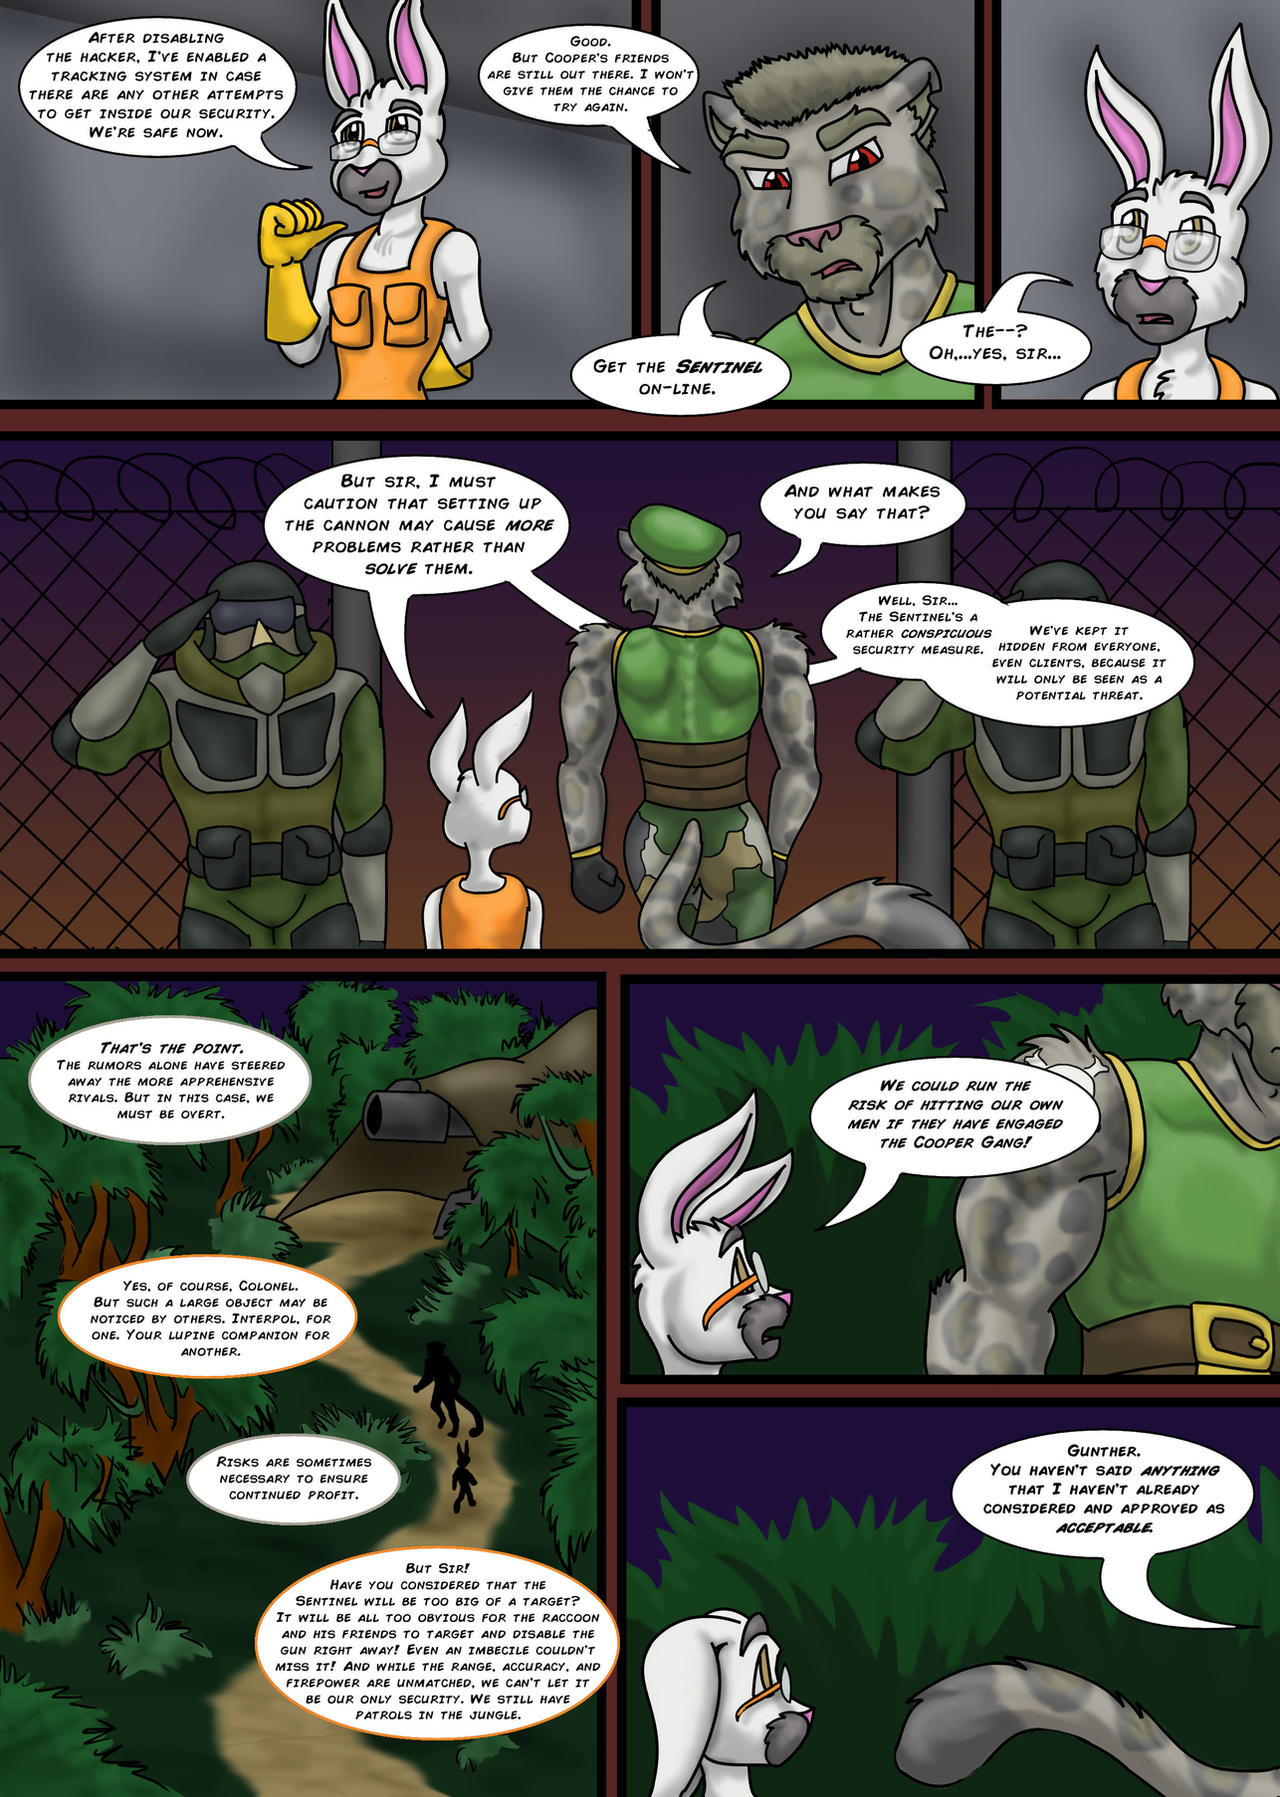 sly cooper thief of virtue page 272 by connordavidson on deviantart